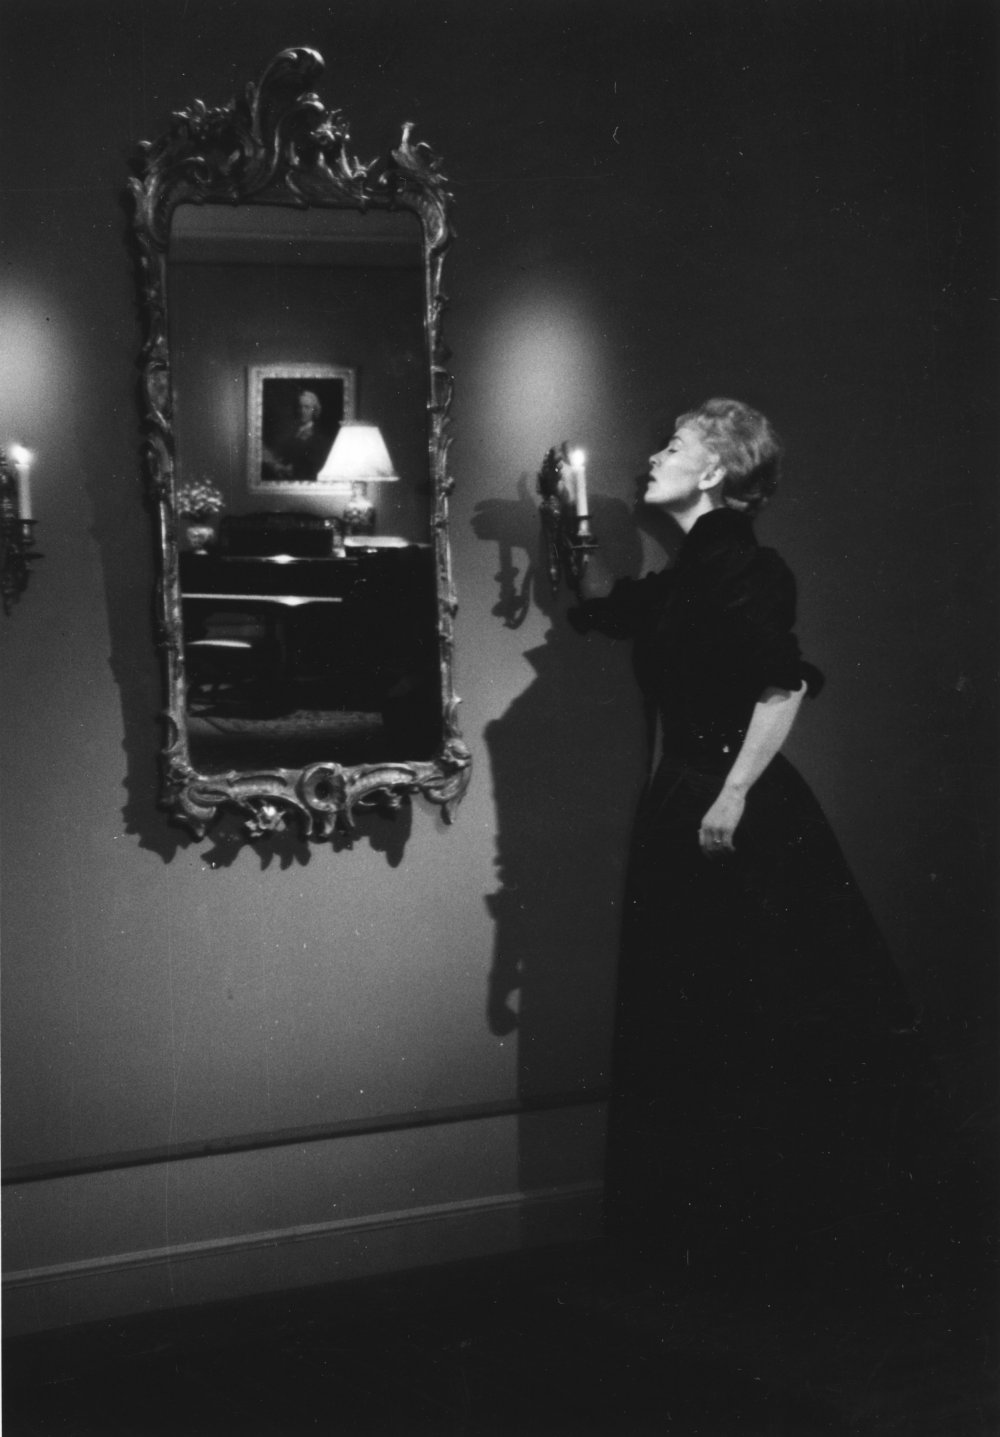 <strong>Gertrud (1964) </strong> The final film by Danish master Carl Theodor Dreyer was booed at its premiere but has grown in reputation as one of the great last films